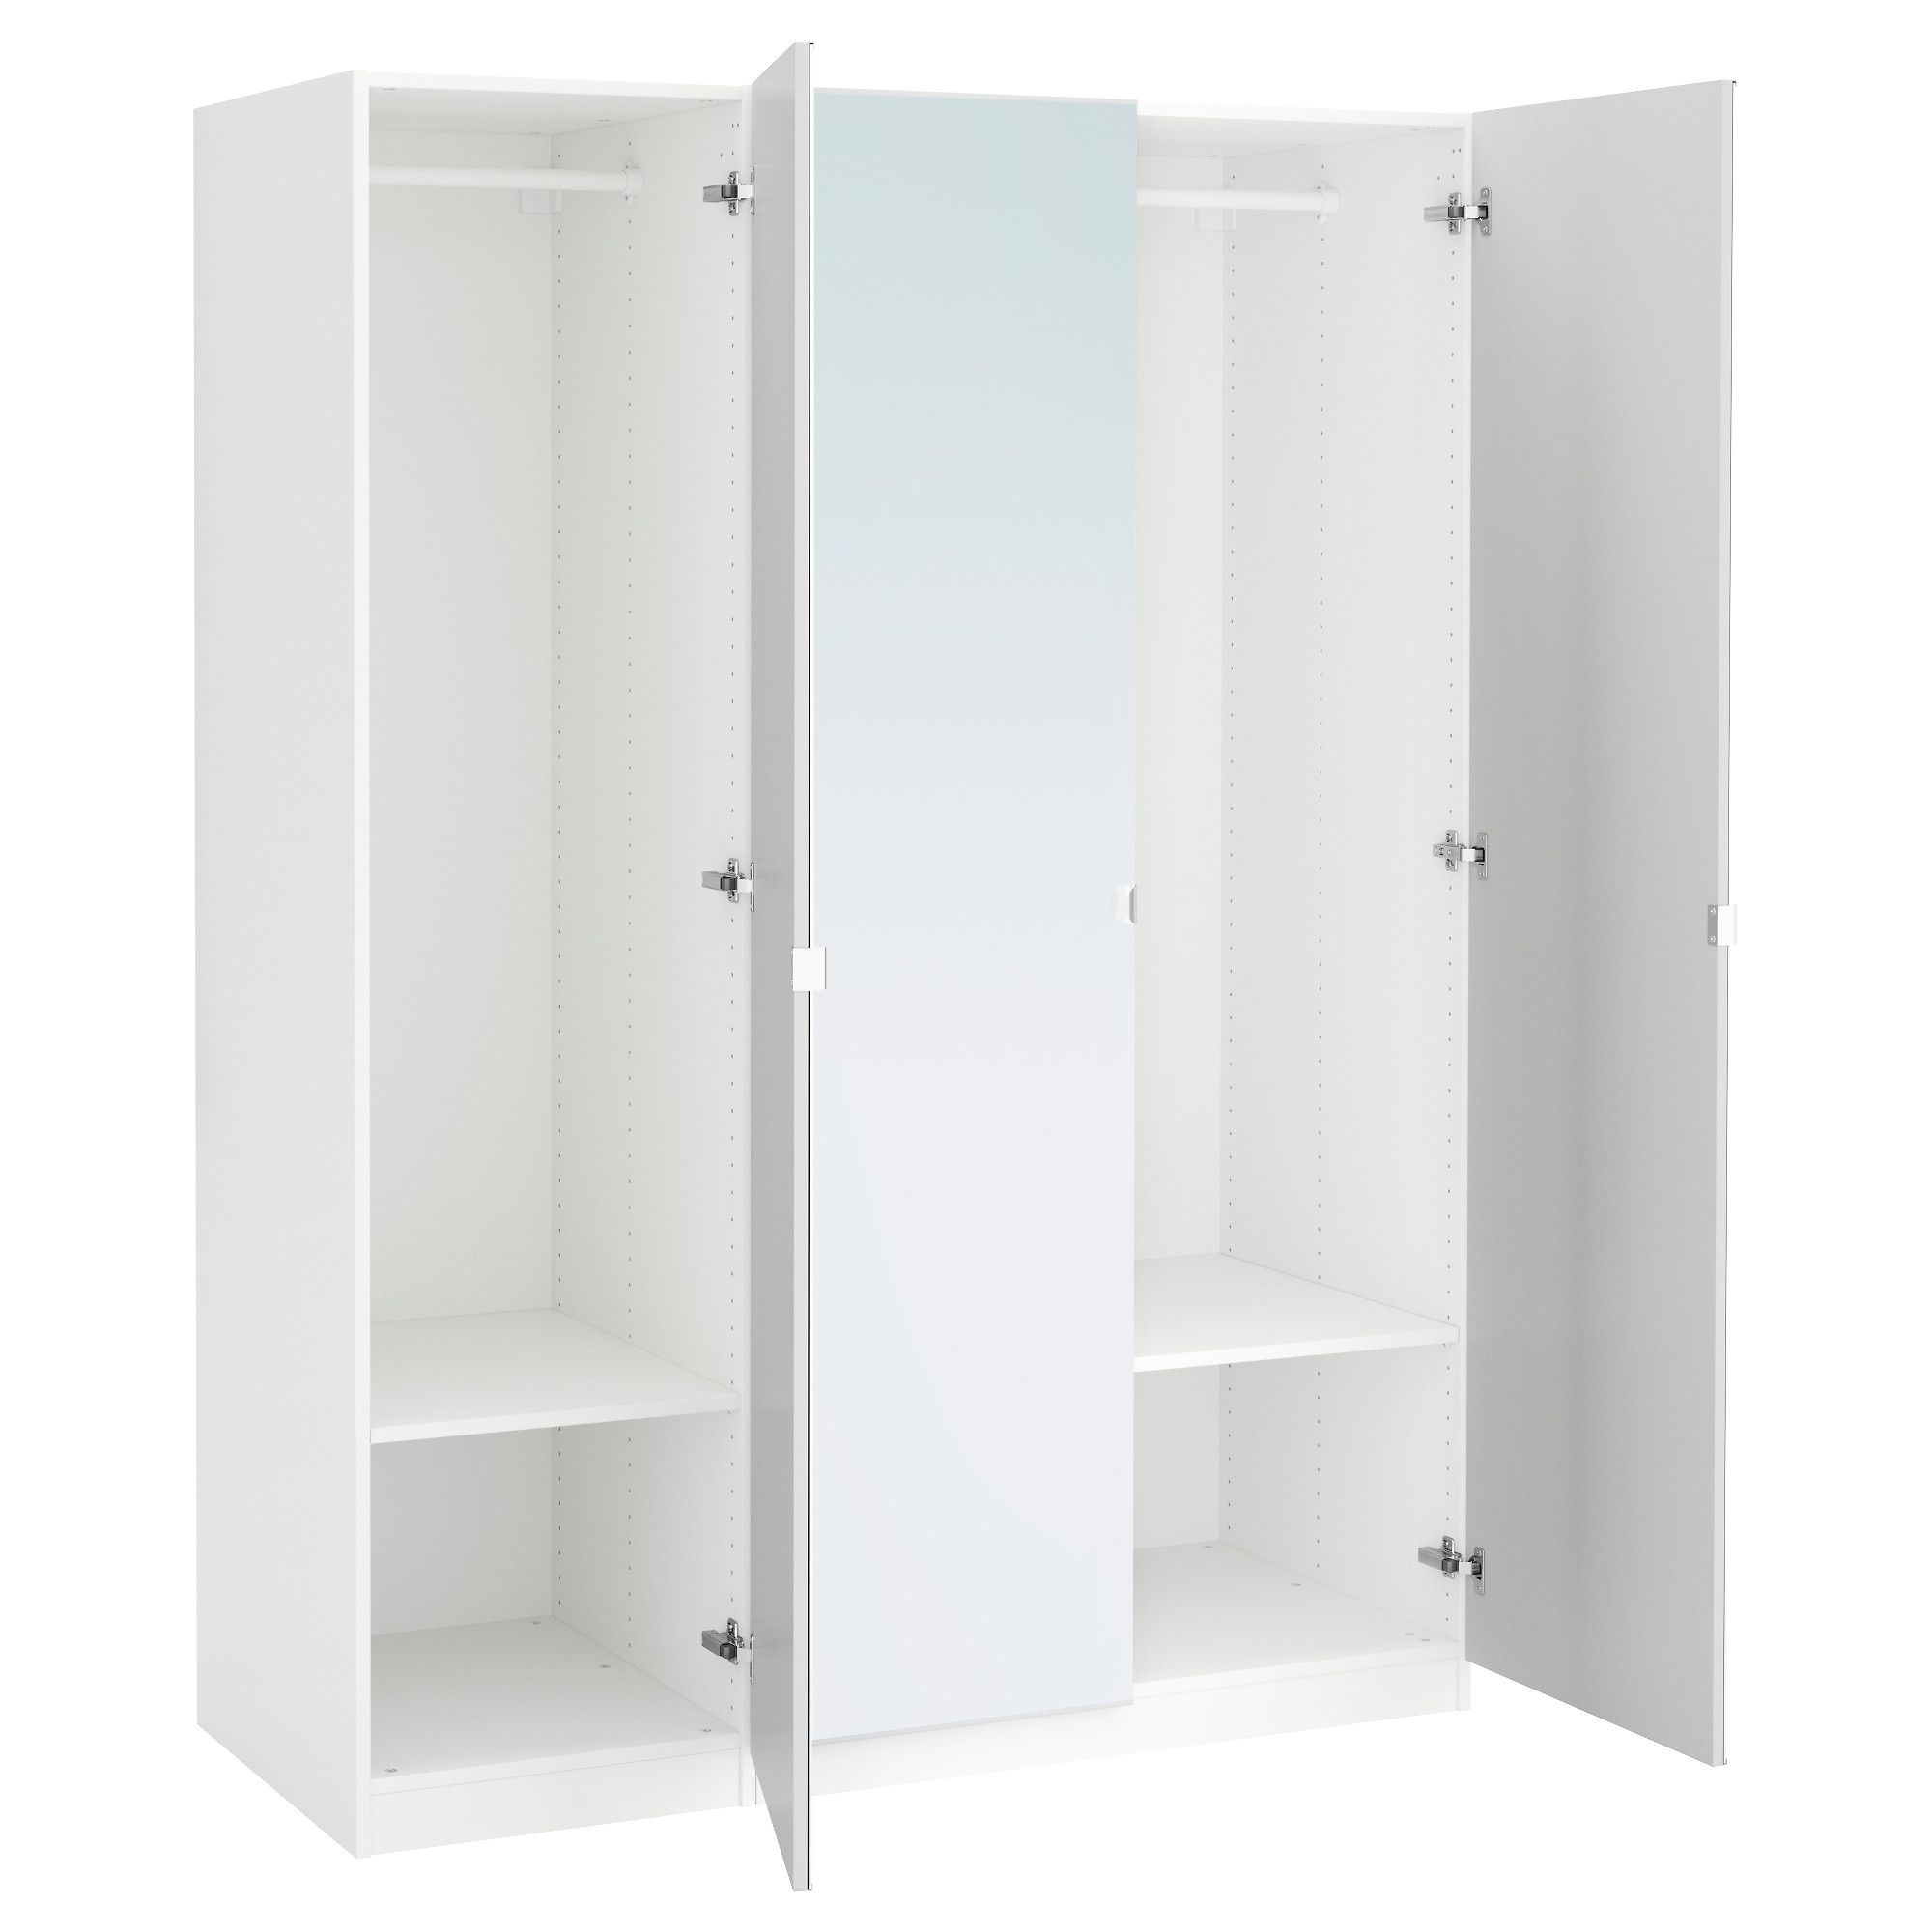 Single White Wardrobes With Mirror Within Well Known Pax Wardrobe White/vikedal Mirror Glass 150X60X201 Cm – Ikea (View 10 of 15)